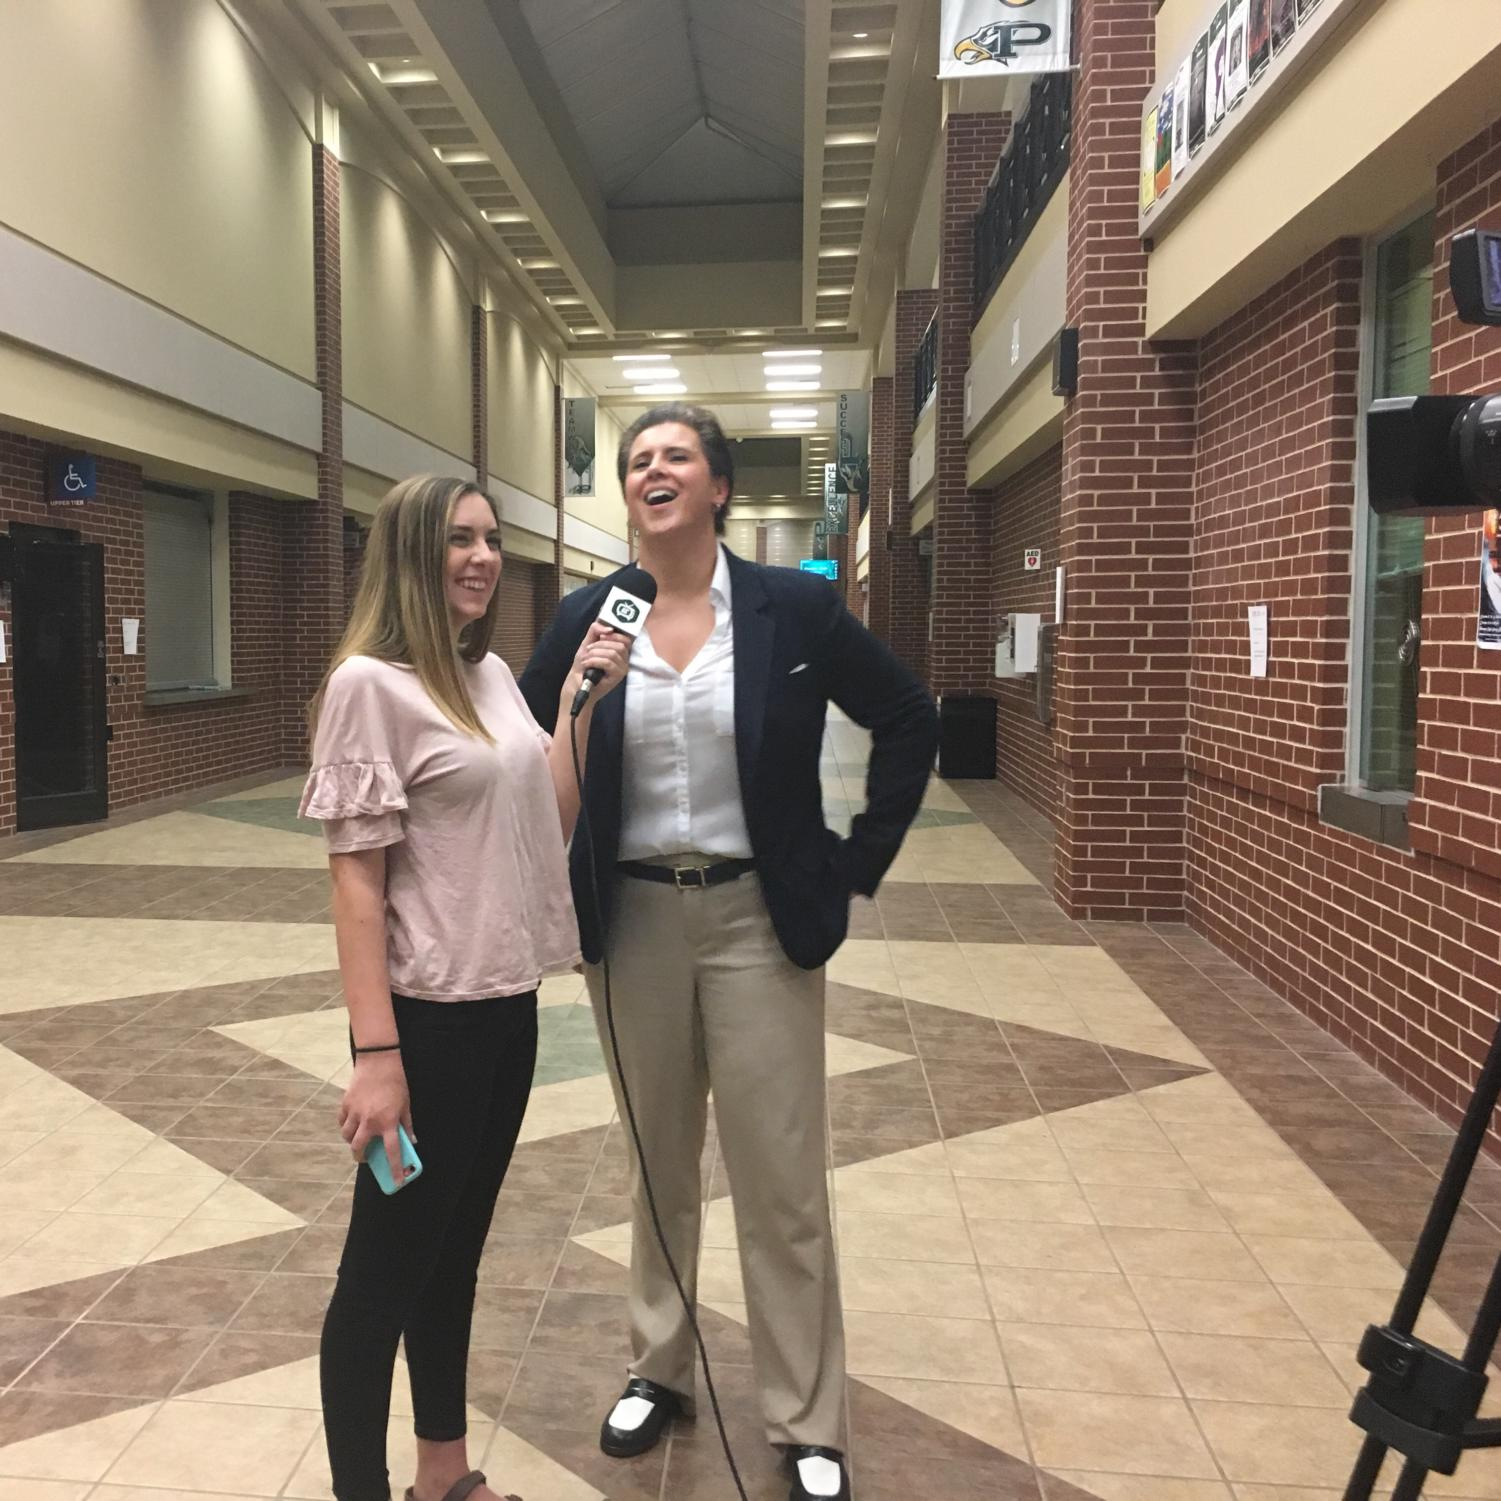 """ENN reporter Haylee Brown interviews democratic candidate Lorie Burch after the Town Hall Forum. Burch answered student-written questions during the forum and had a table set up outside the auditorium before and after for questions. """"When I was a student at Plano Senior High in AP history class and in government, I never imagined that one day I would aspire to be a part of that,"""" Burch said. """"But my teachers really inspired me to get involved in advocacy and leadership."""""""